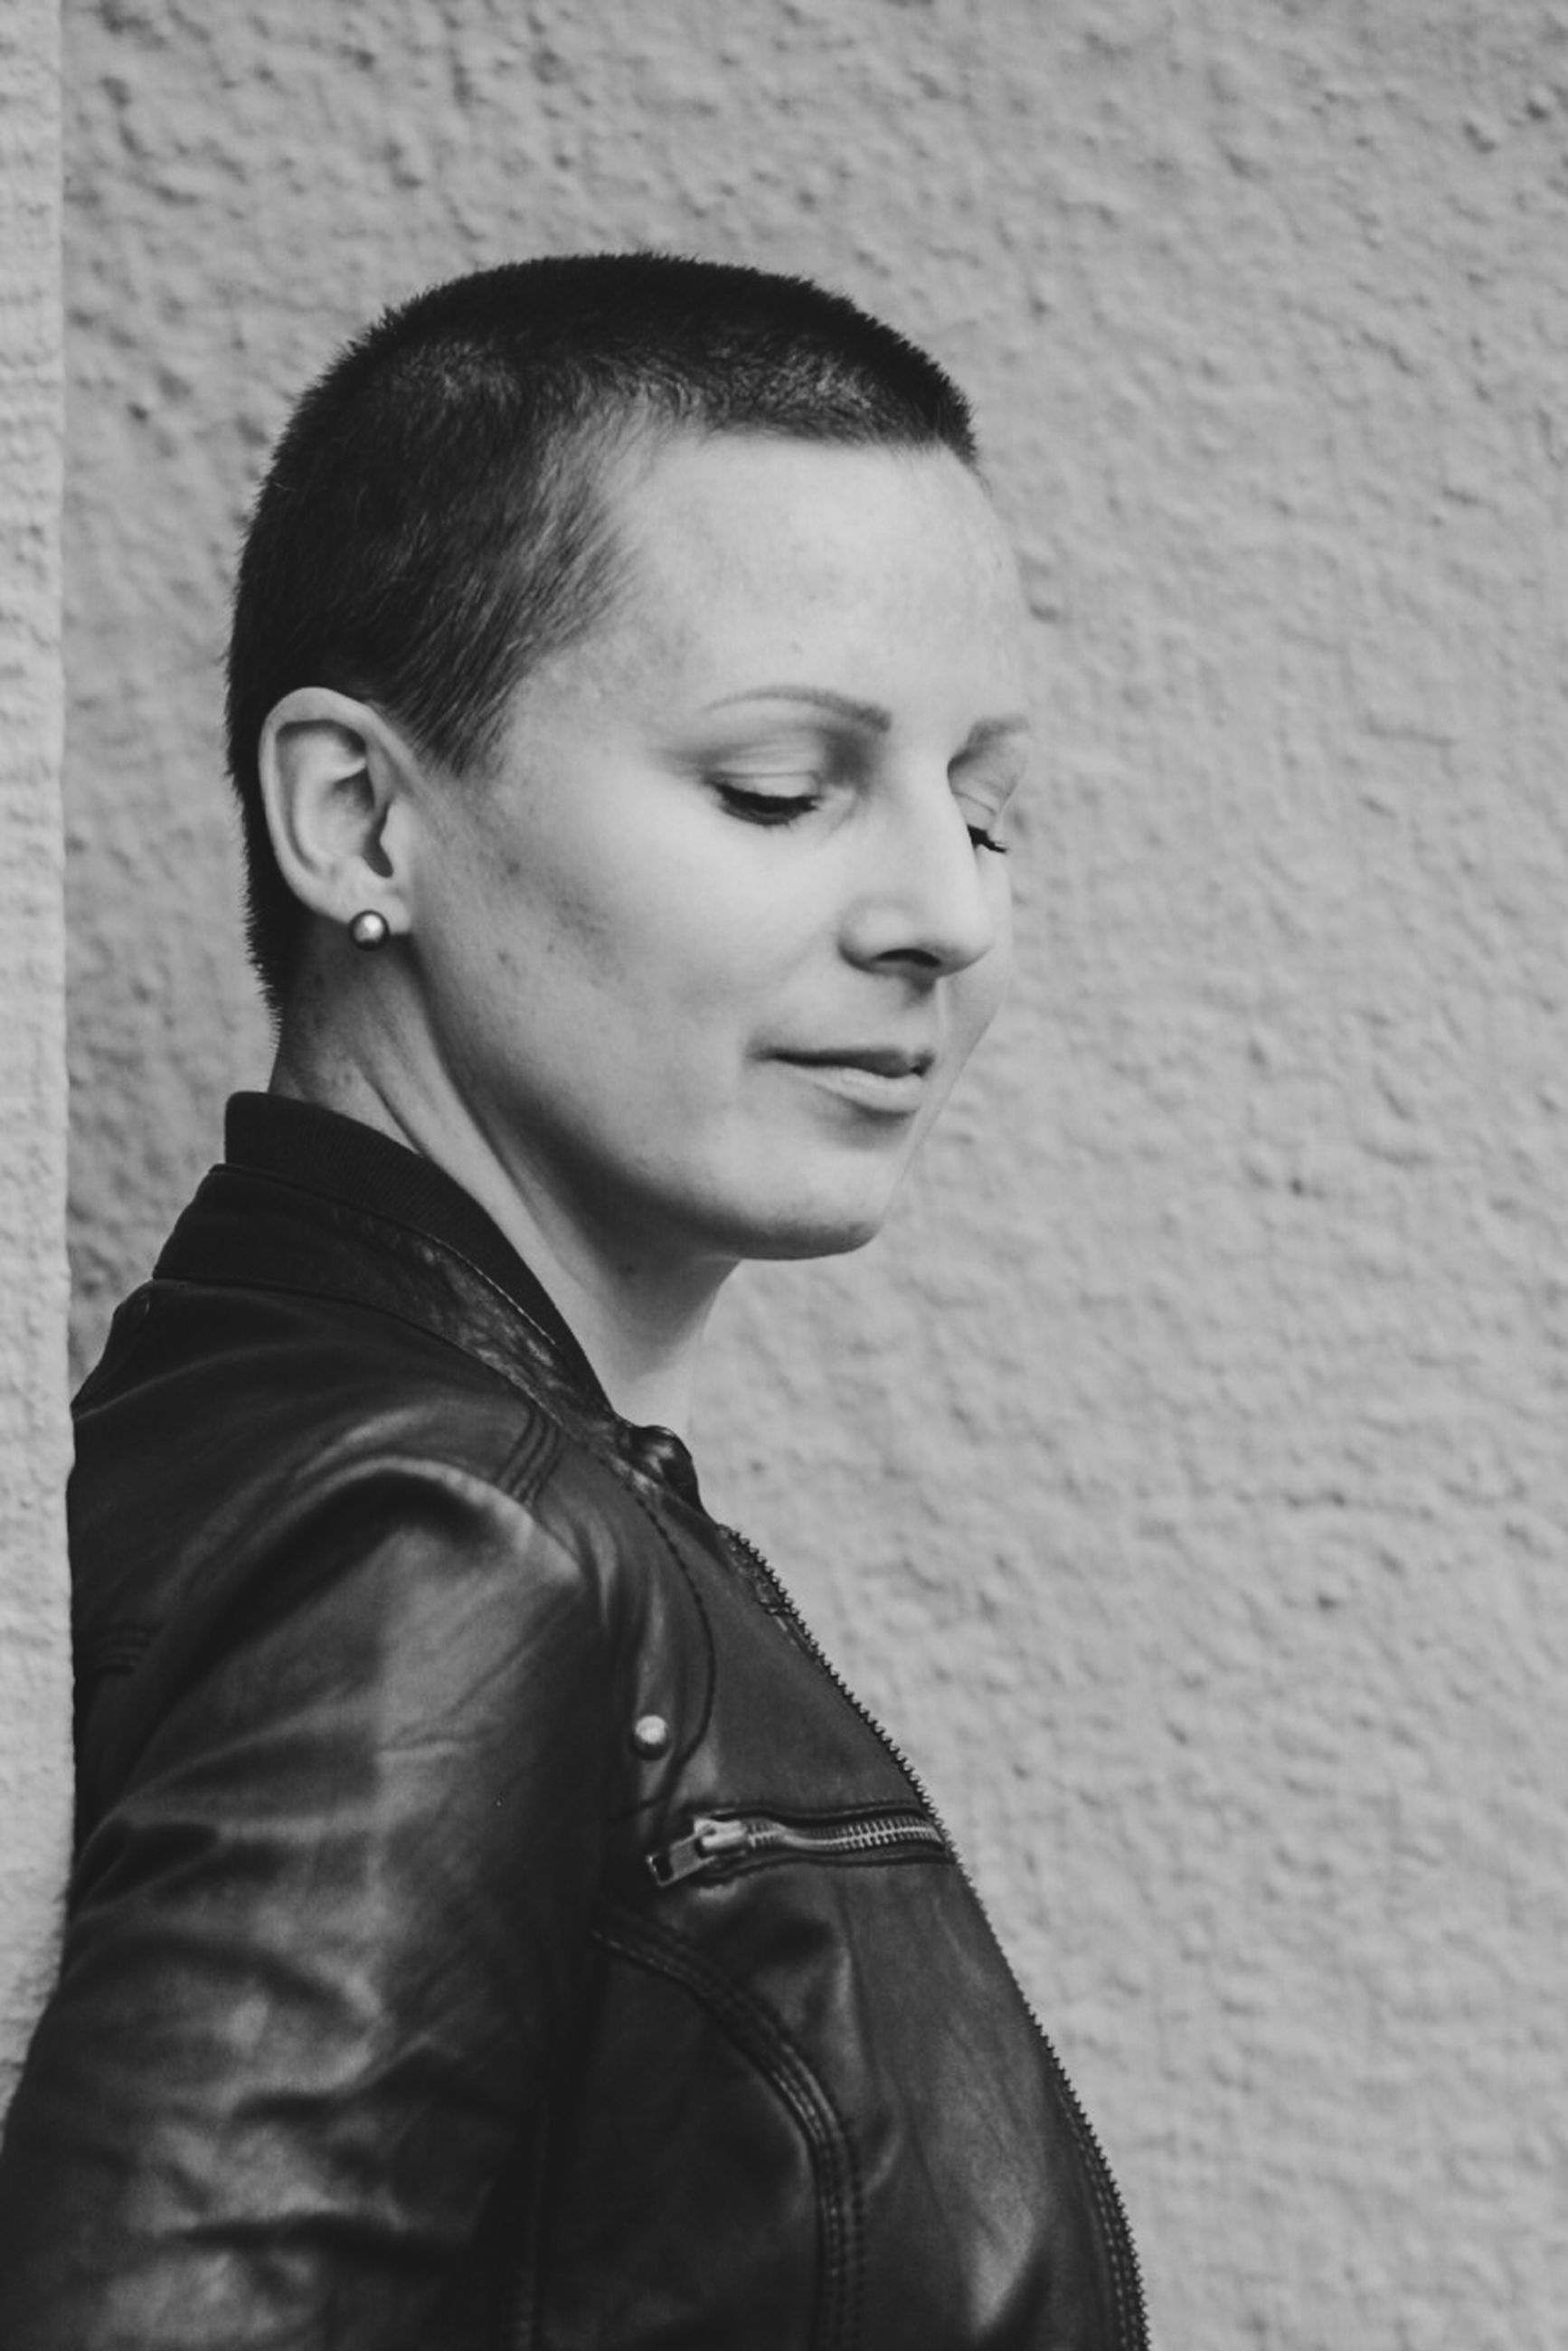 one person, real people, portrait, young adult, lifestyles, headshot, wall - building feature, jacket, casual clothing, leisure activity, clothing, leather, leather jacket, standing, looking, looking away, smiling, young women, contemplation, beautiful woman, hairstyle